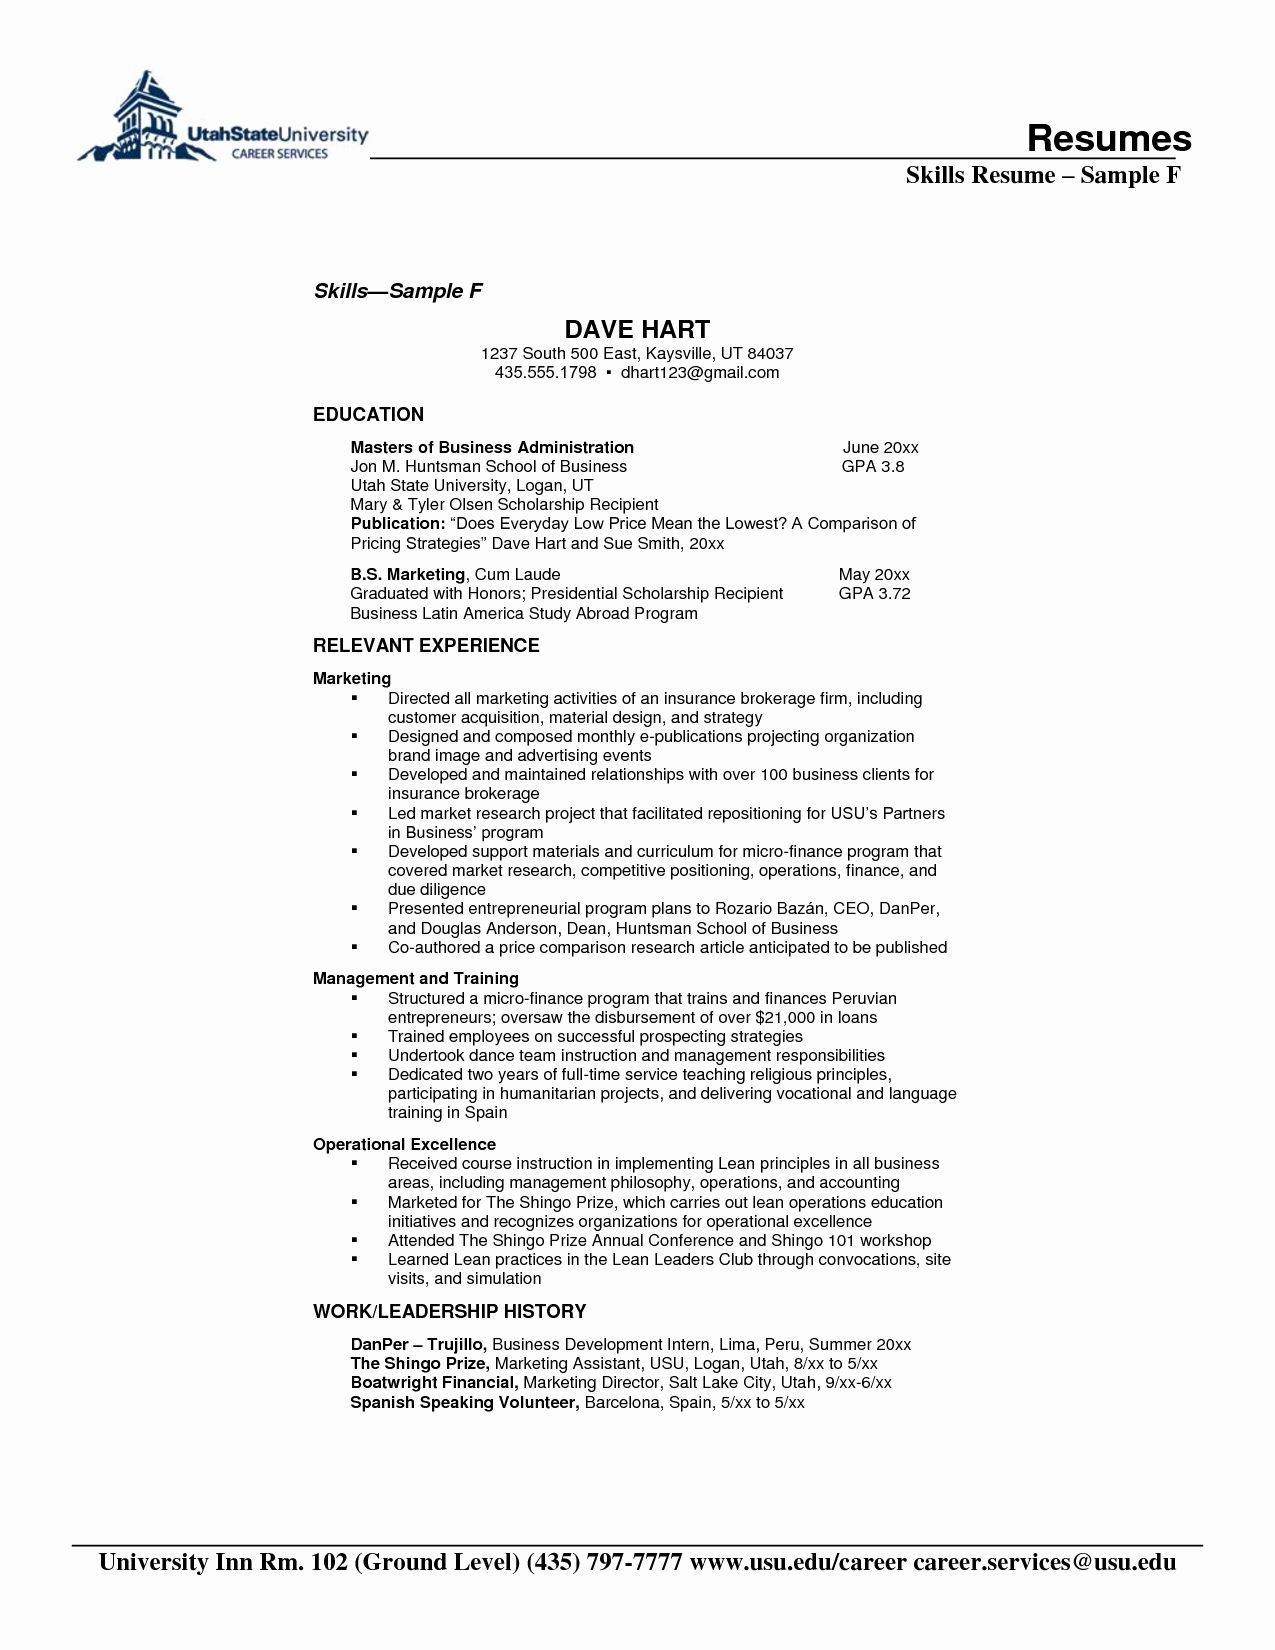 Resume Format For 5 Years Experience In Operations Resume Format Resume Skills Resume Skills Section Resume Format